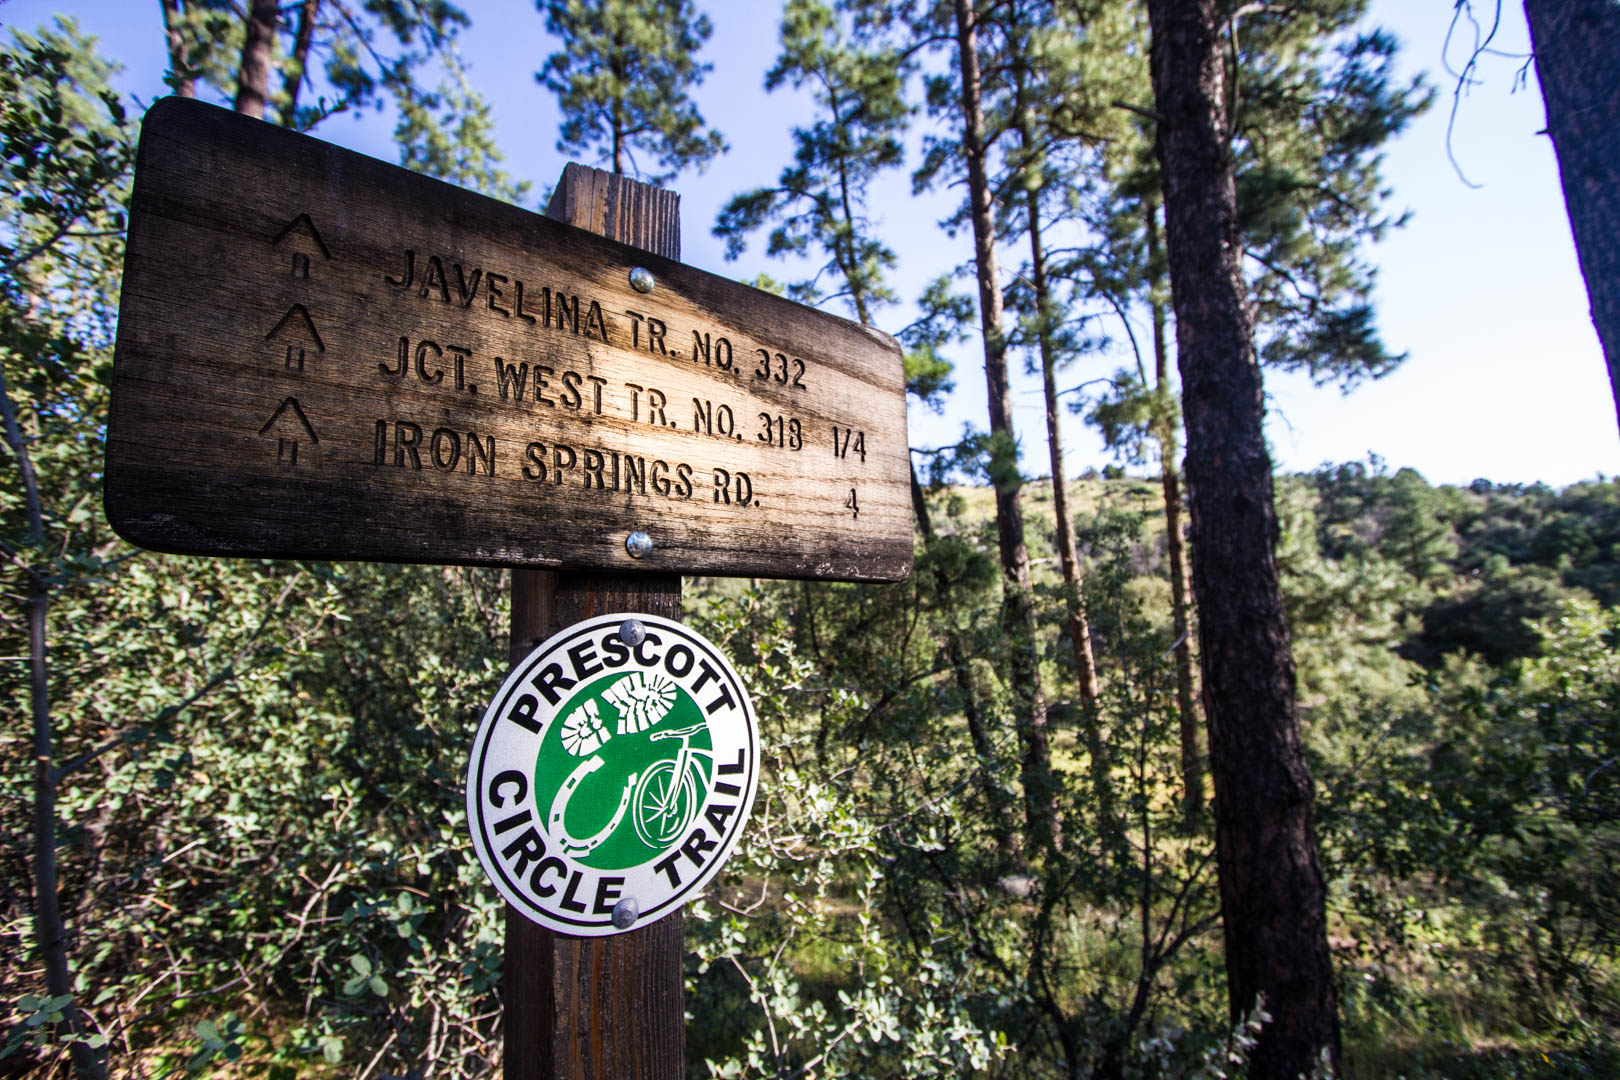 Prescott Arizona Recreation hiking trails mountain biking running outdoors